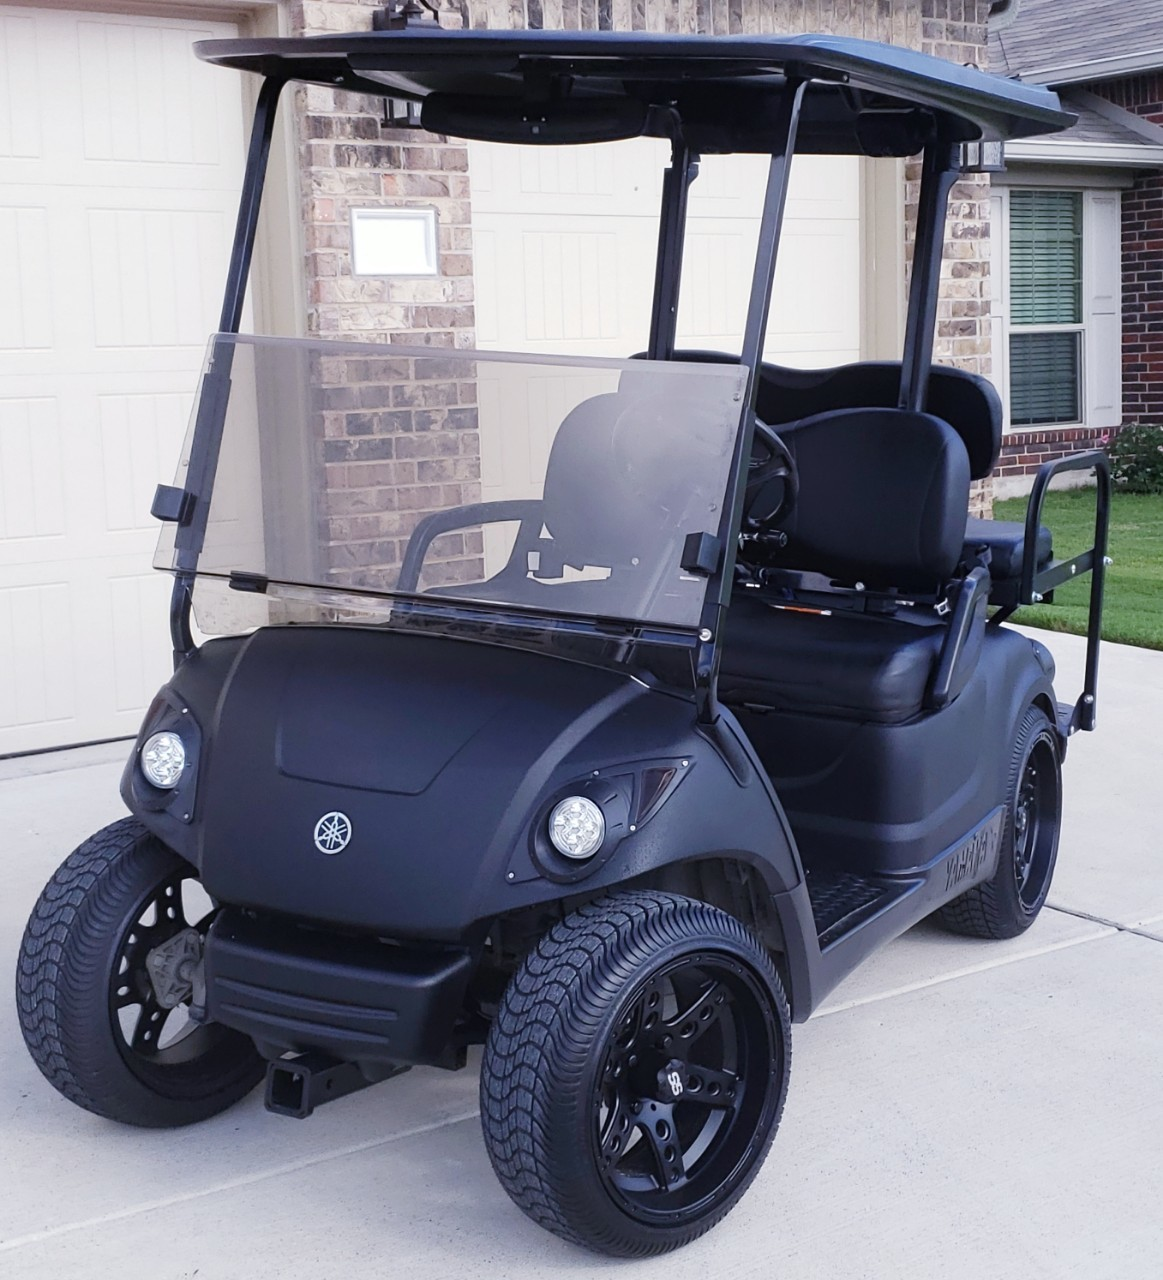 High Horsepower Golf Cart Engines  Golf Cart  Golf Cart Customs